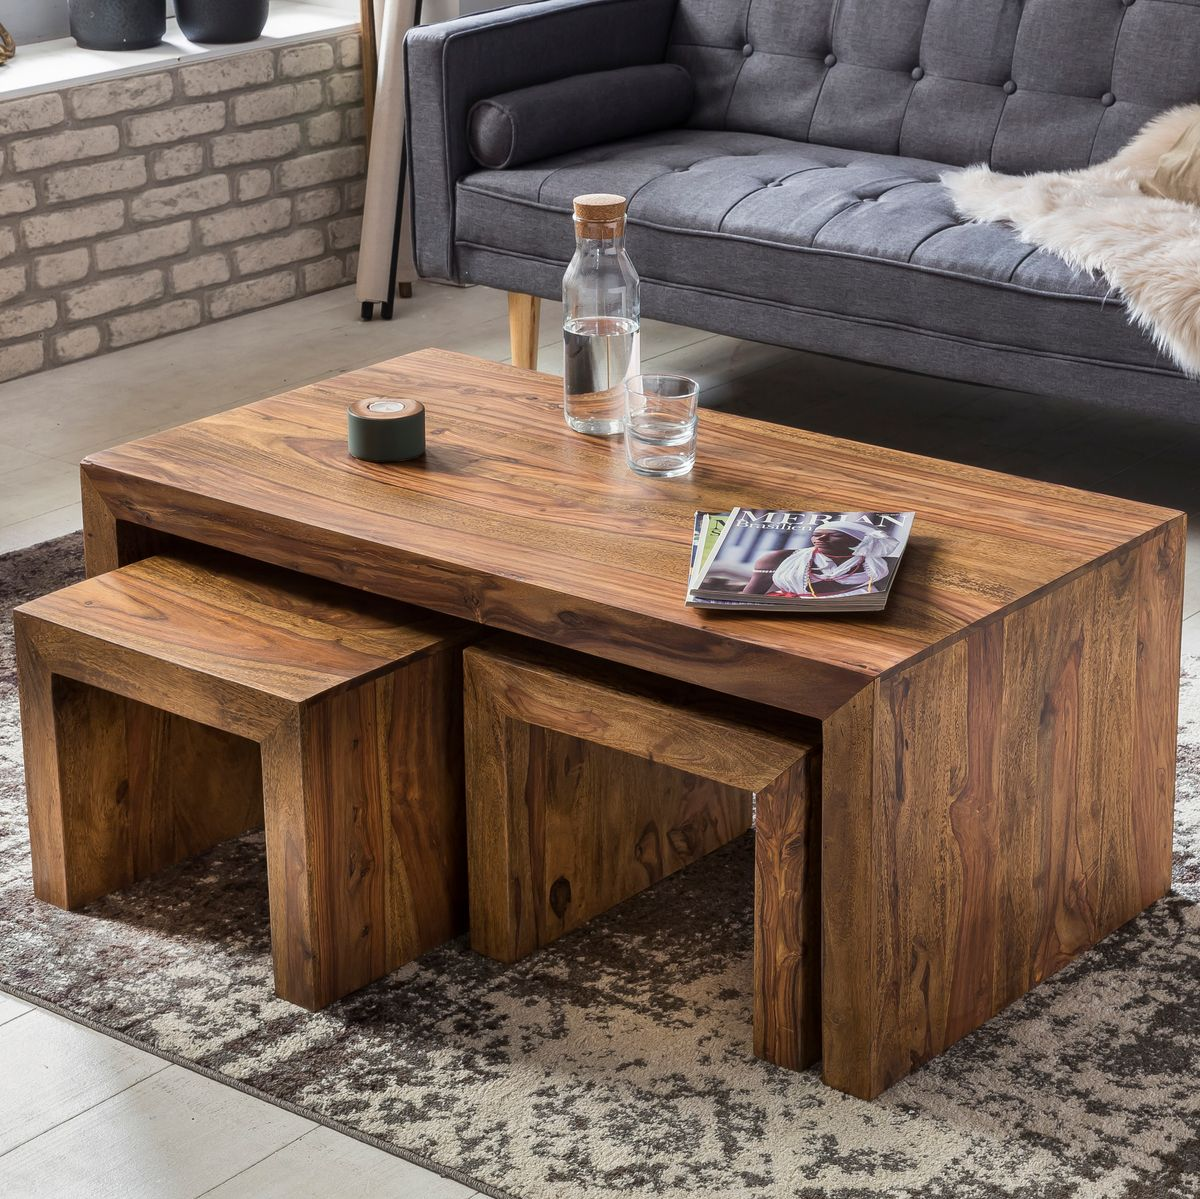 finebuy sheesham couchtisch massivholz mit 2 hocker massiv wohnzimmertisch neu ebay. Black Bedroom Furniture Sets. Home Design Ideas